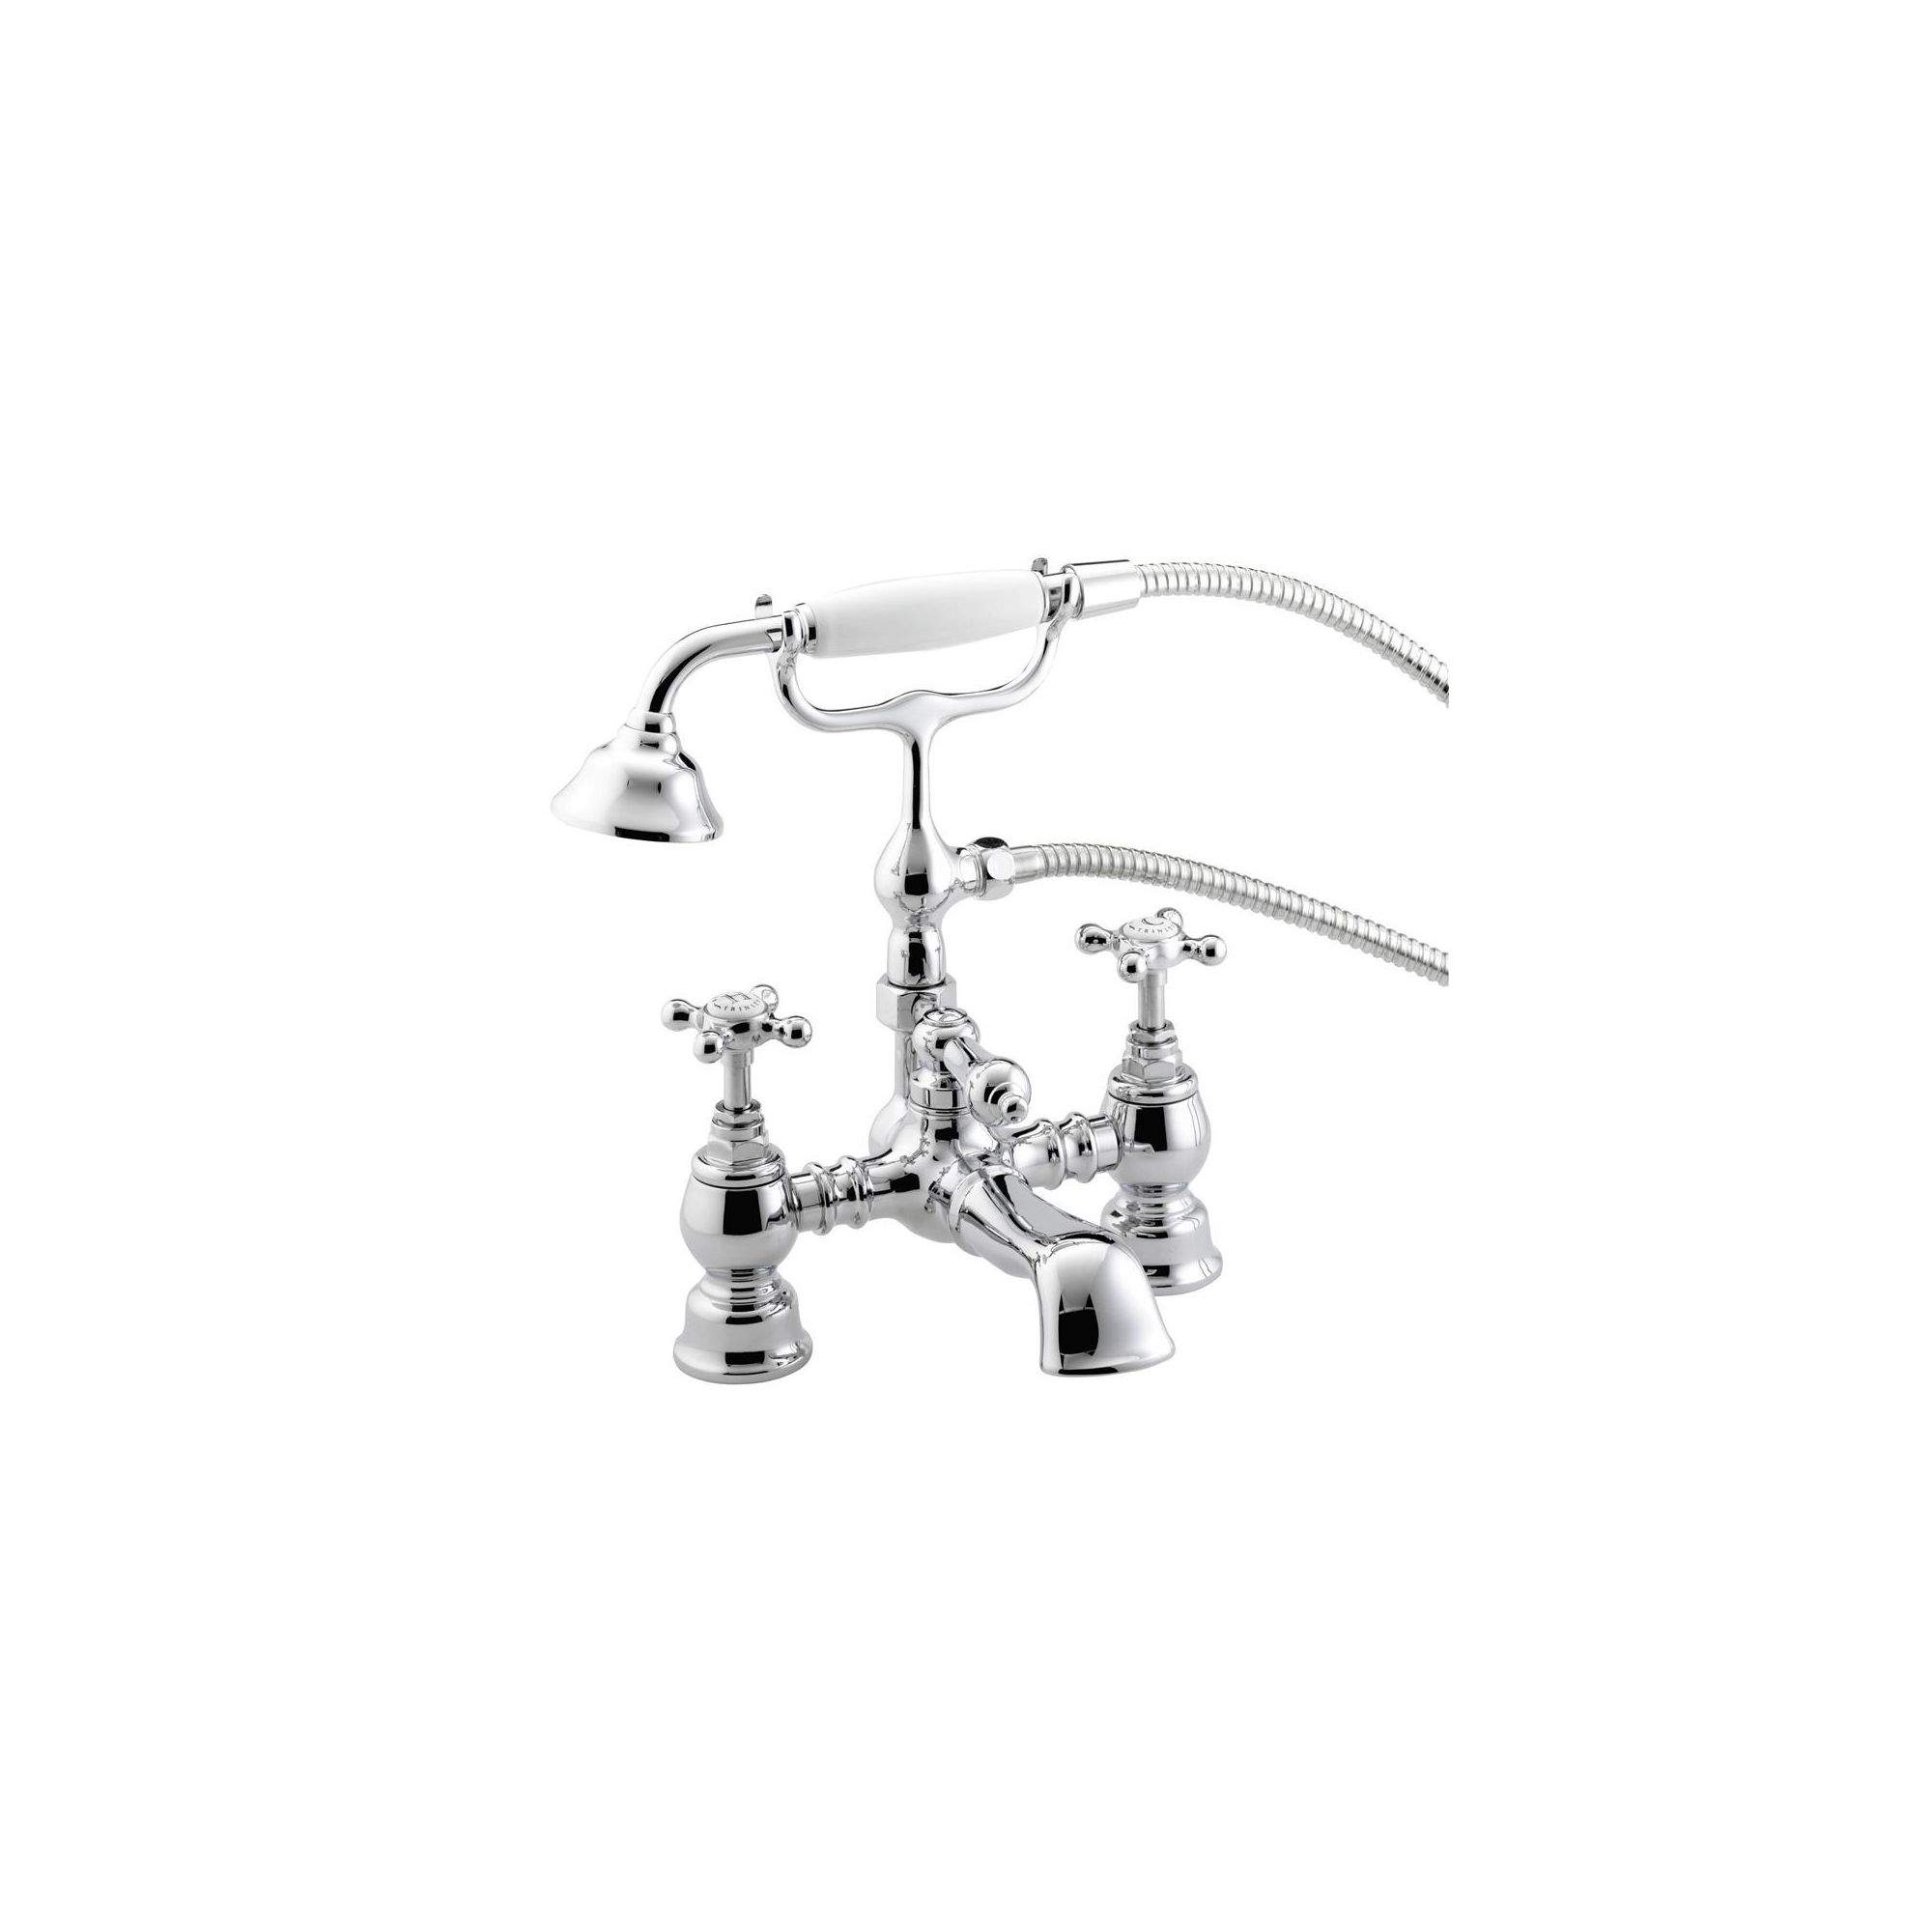 Bristan Trinity Bath Shower Mixer Tap Chrome Plated at Tesco Direct